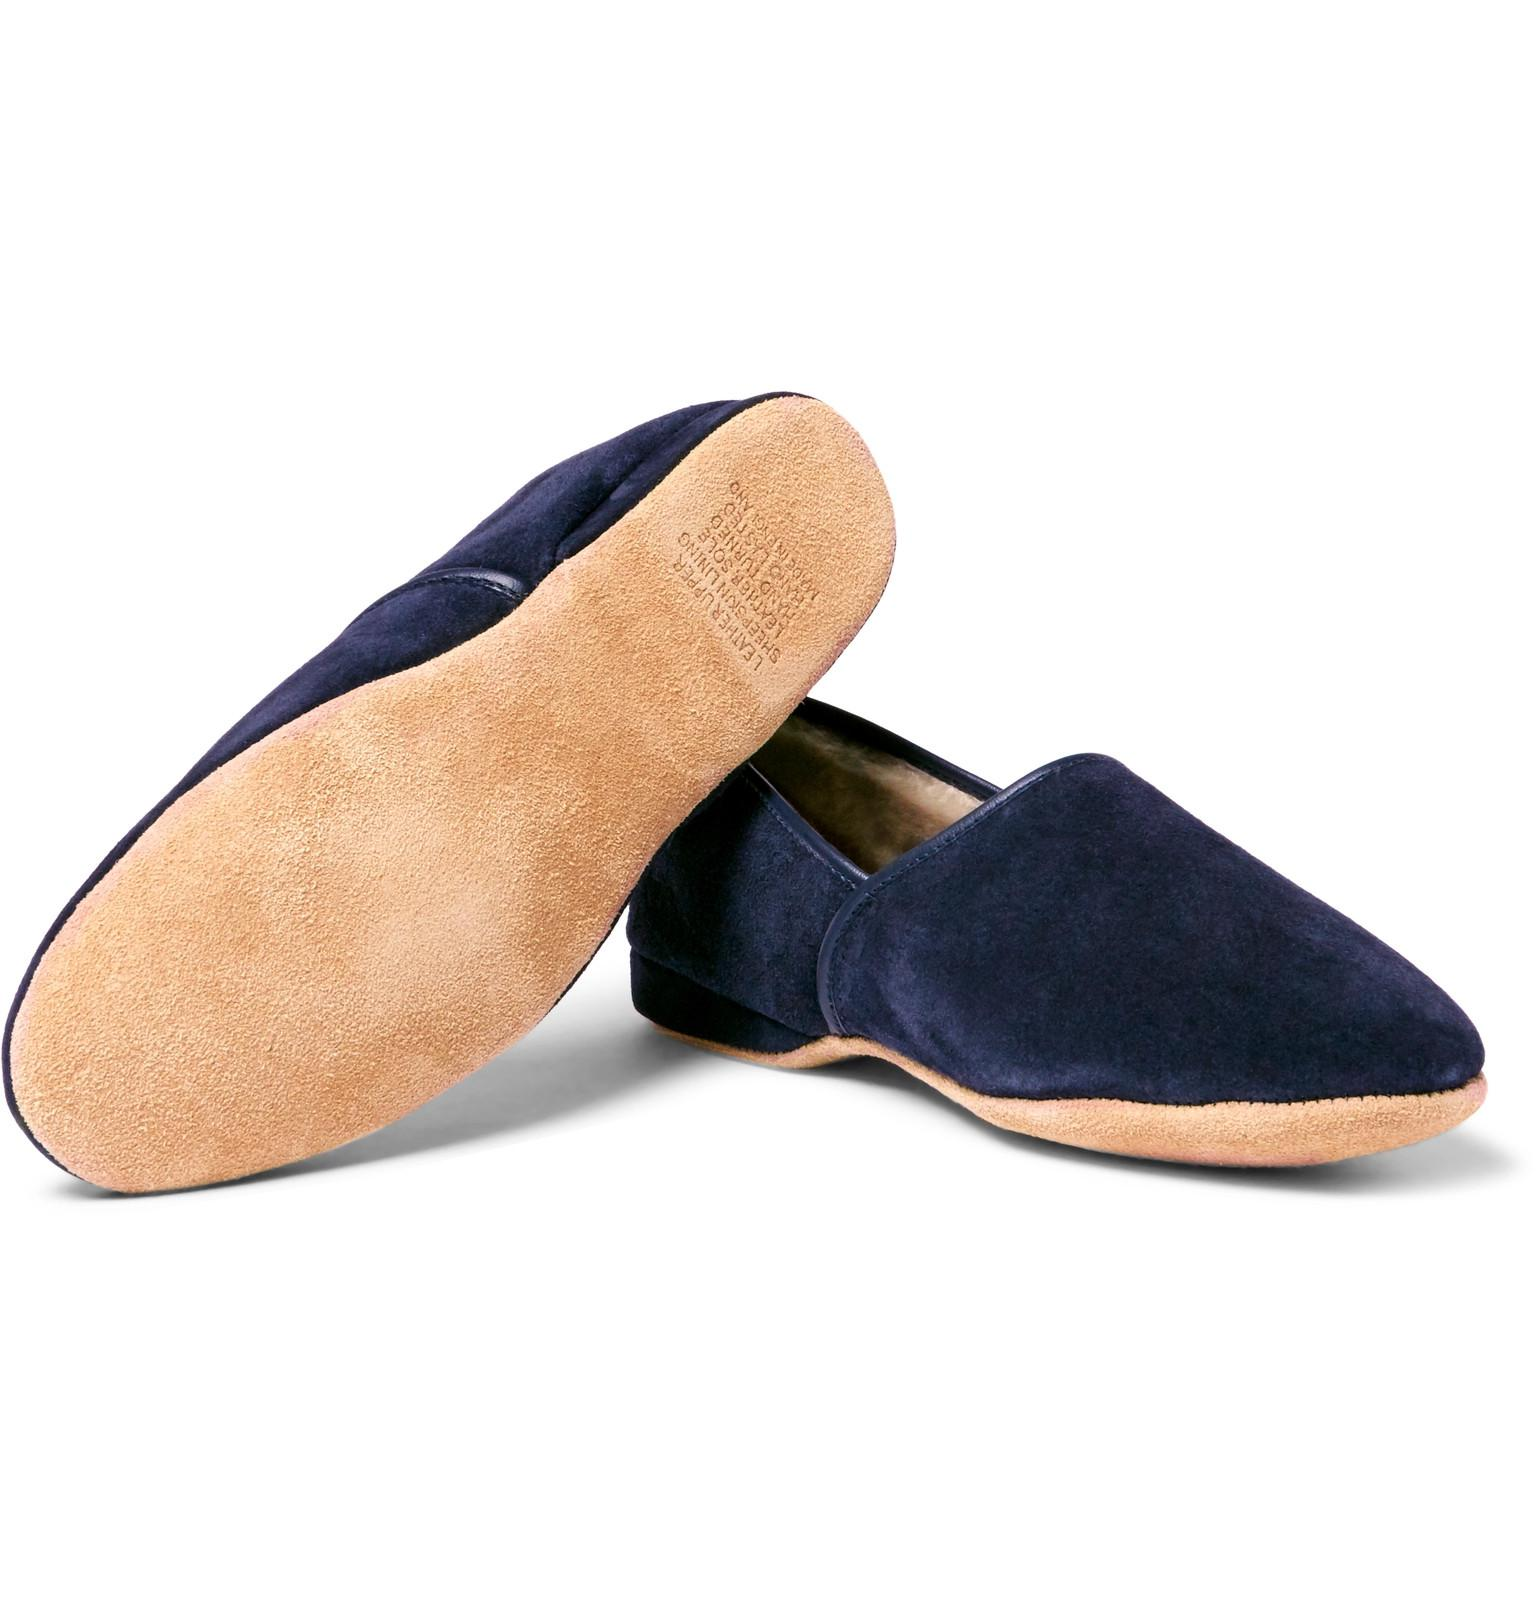 1812e0c35ab2 Derek Rose Crawford Shearling-lined Suede Slippers in Blue for Men ...